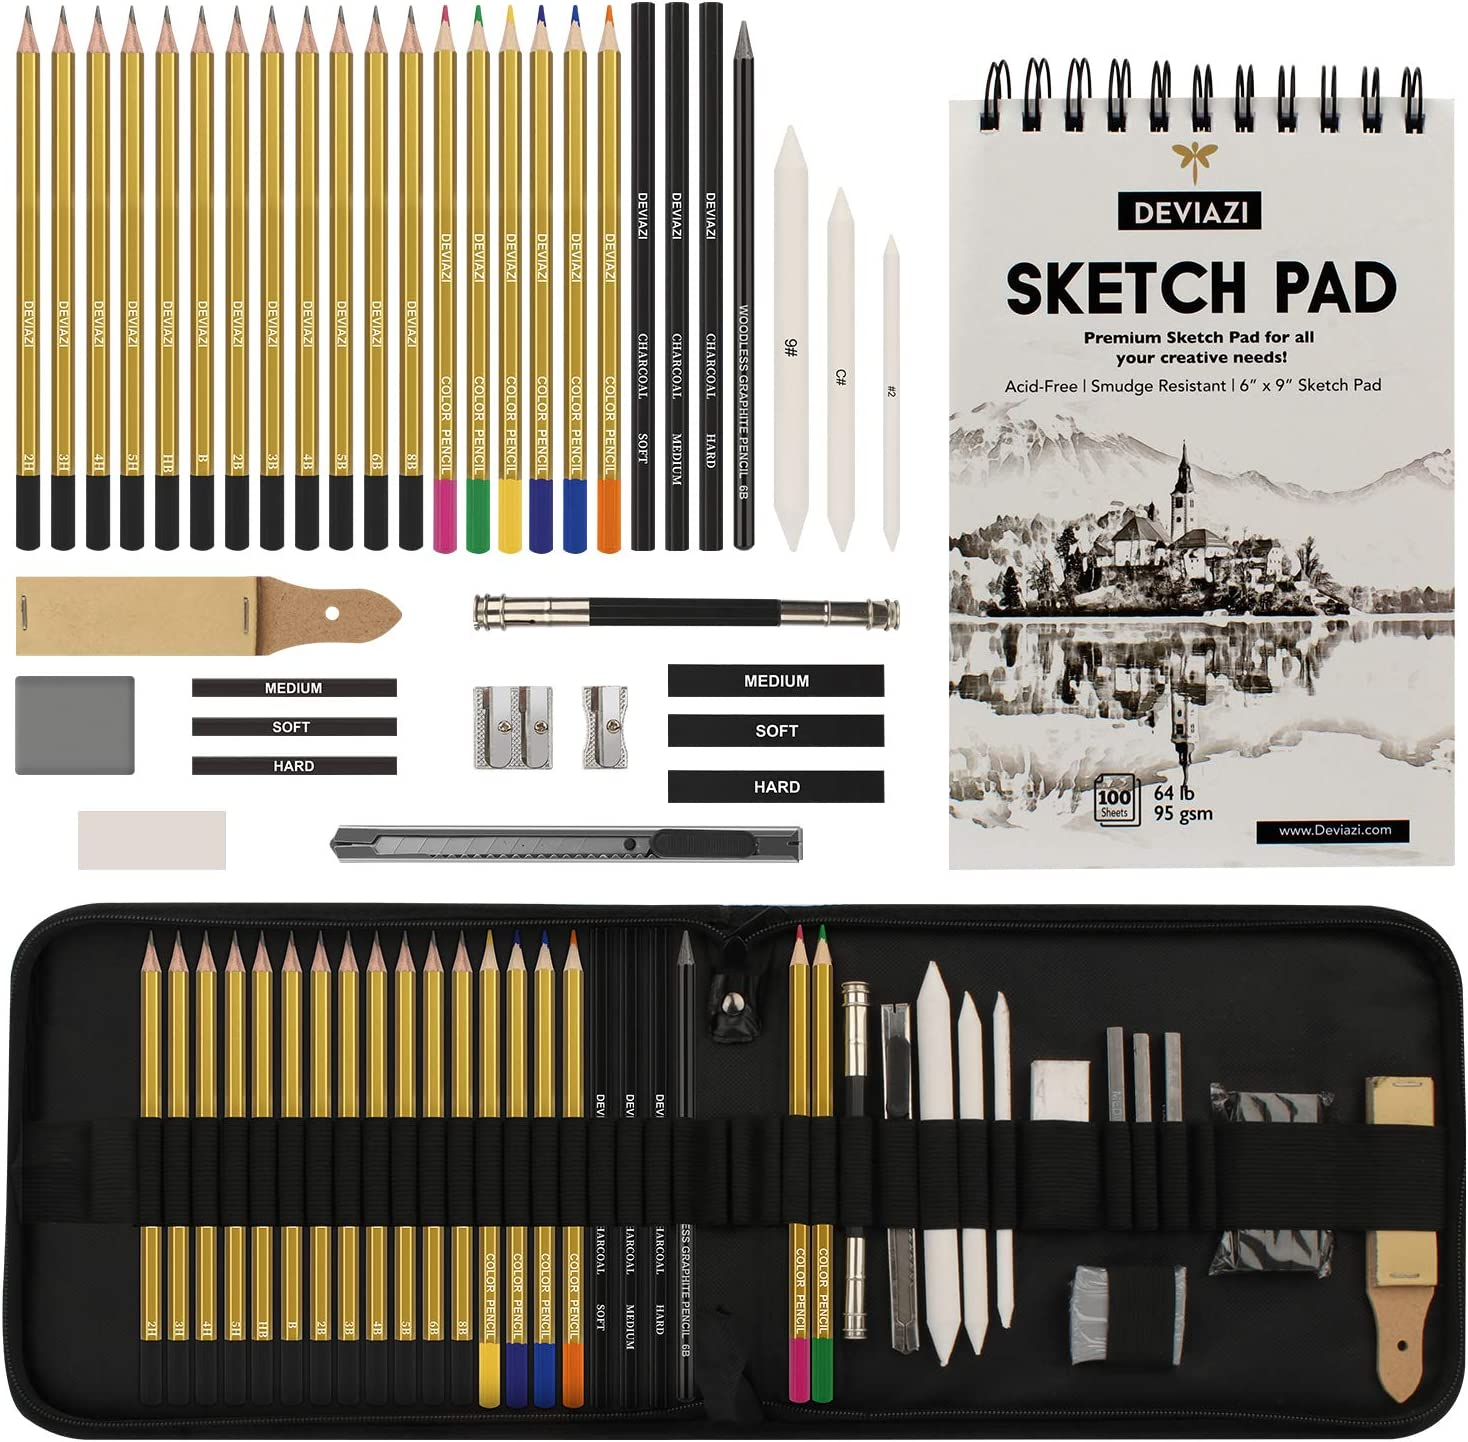 Deviazi (40-Piece Set) Artist Drawing Pencils Sketching Set. Includes Graphite, Charcoal Pencils, 100 Page Drawing Pad, Kneaded Eraser, Blending Stump with Travel case for Kids, Teens and Adults.